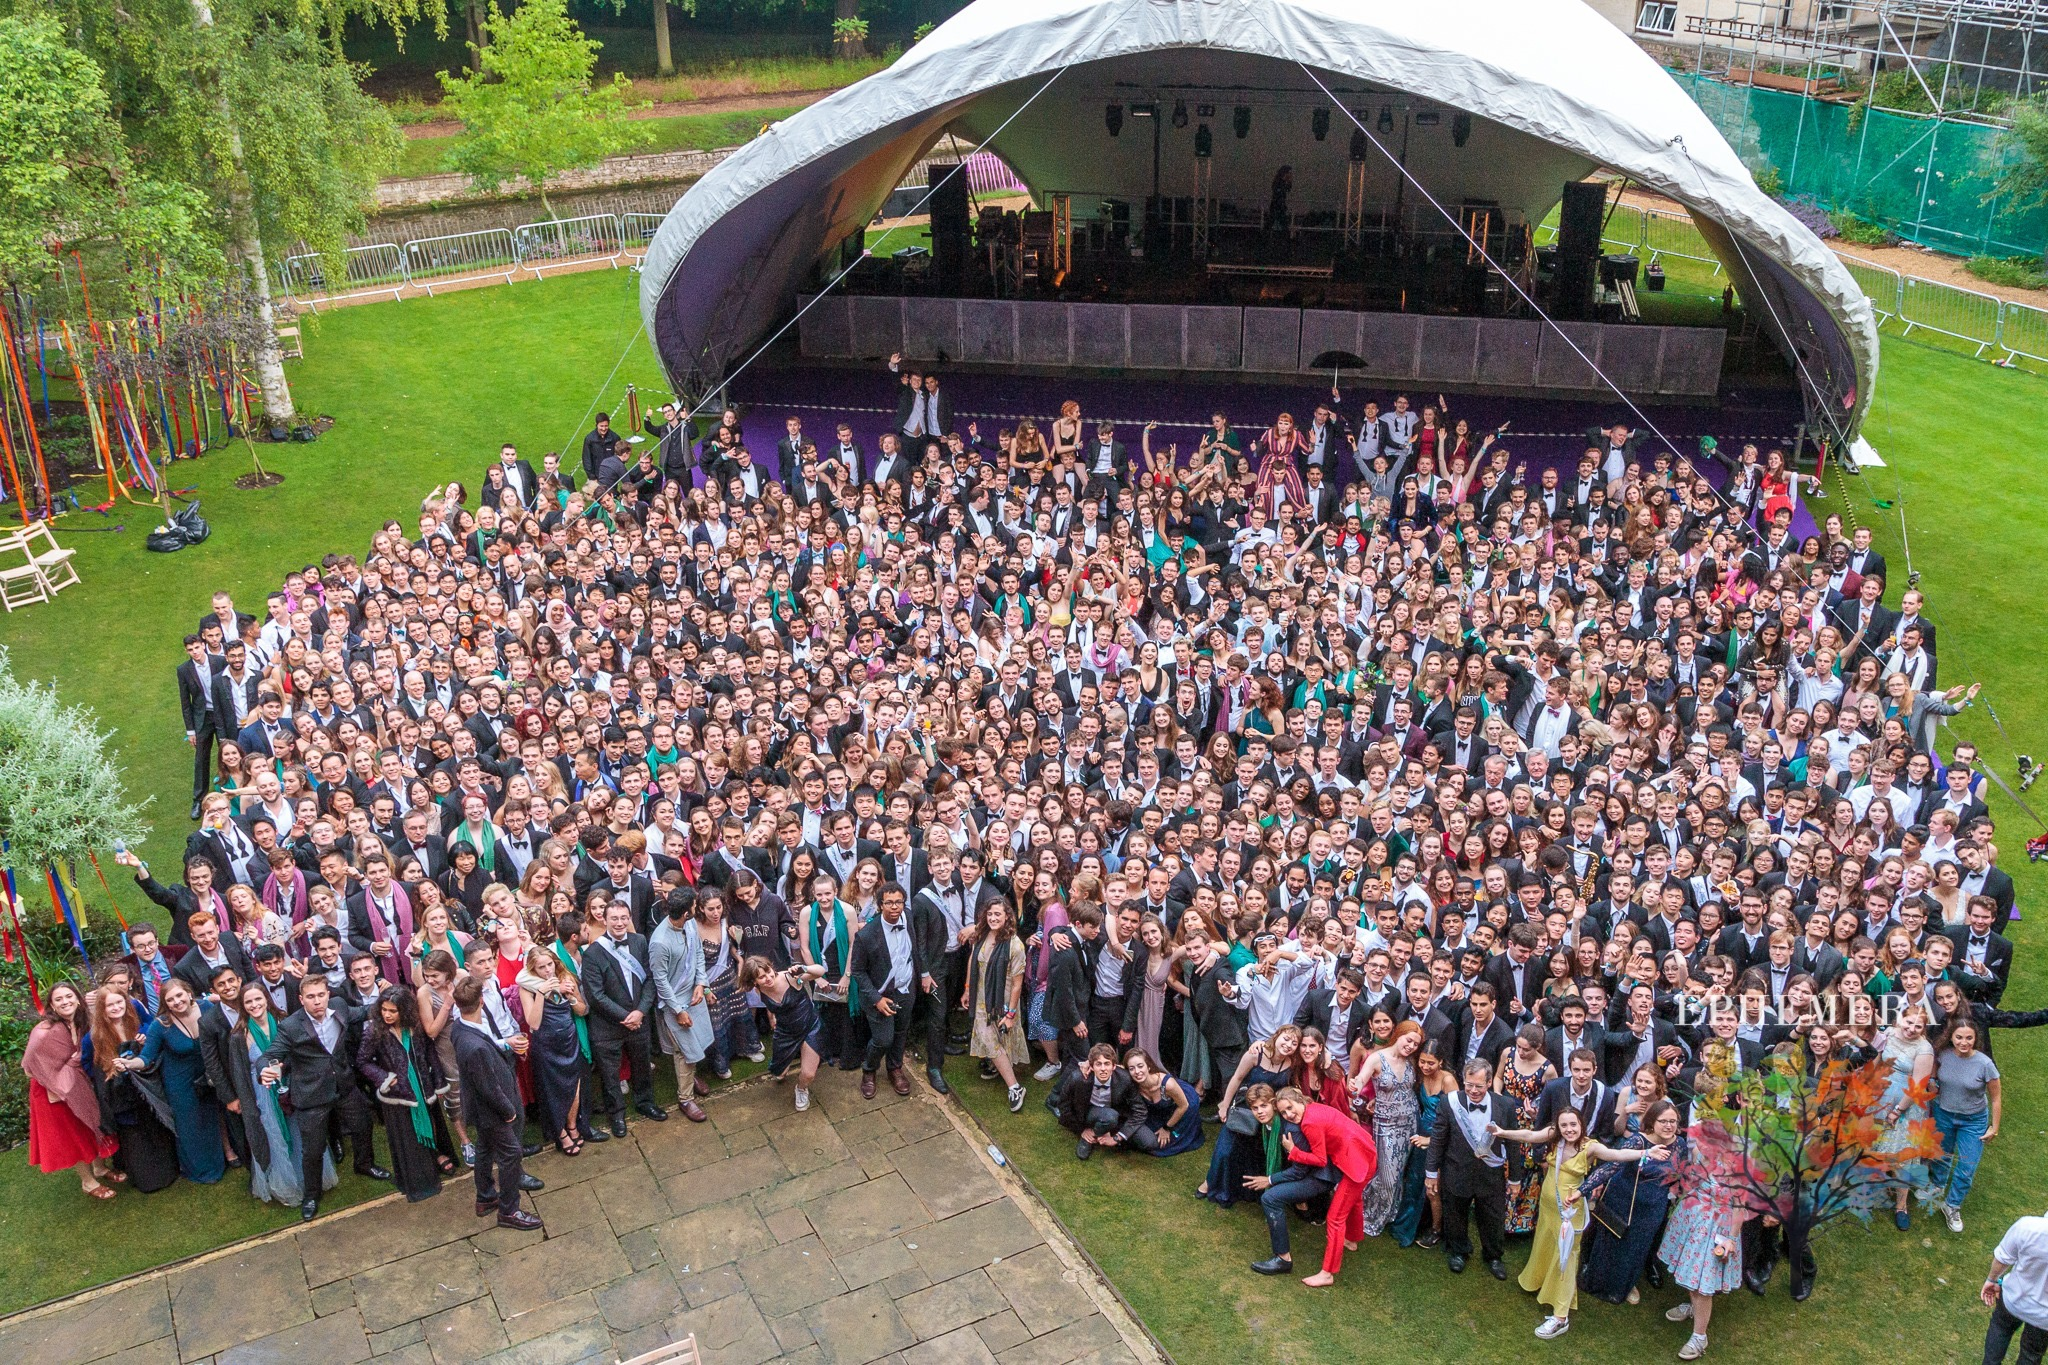 Don't forget to gather for the survivors' photo, which marks the end of the May ball ft. Queens' May Ball 2019 survivors' photo